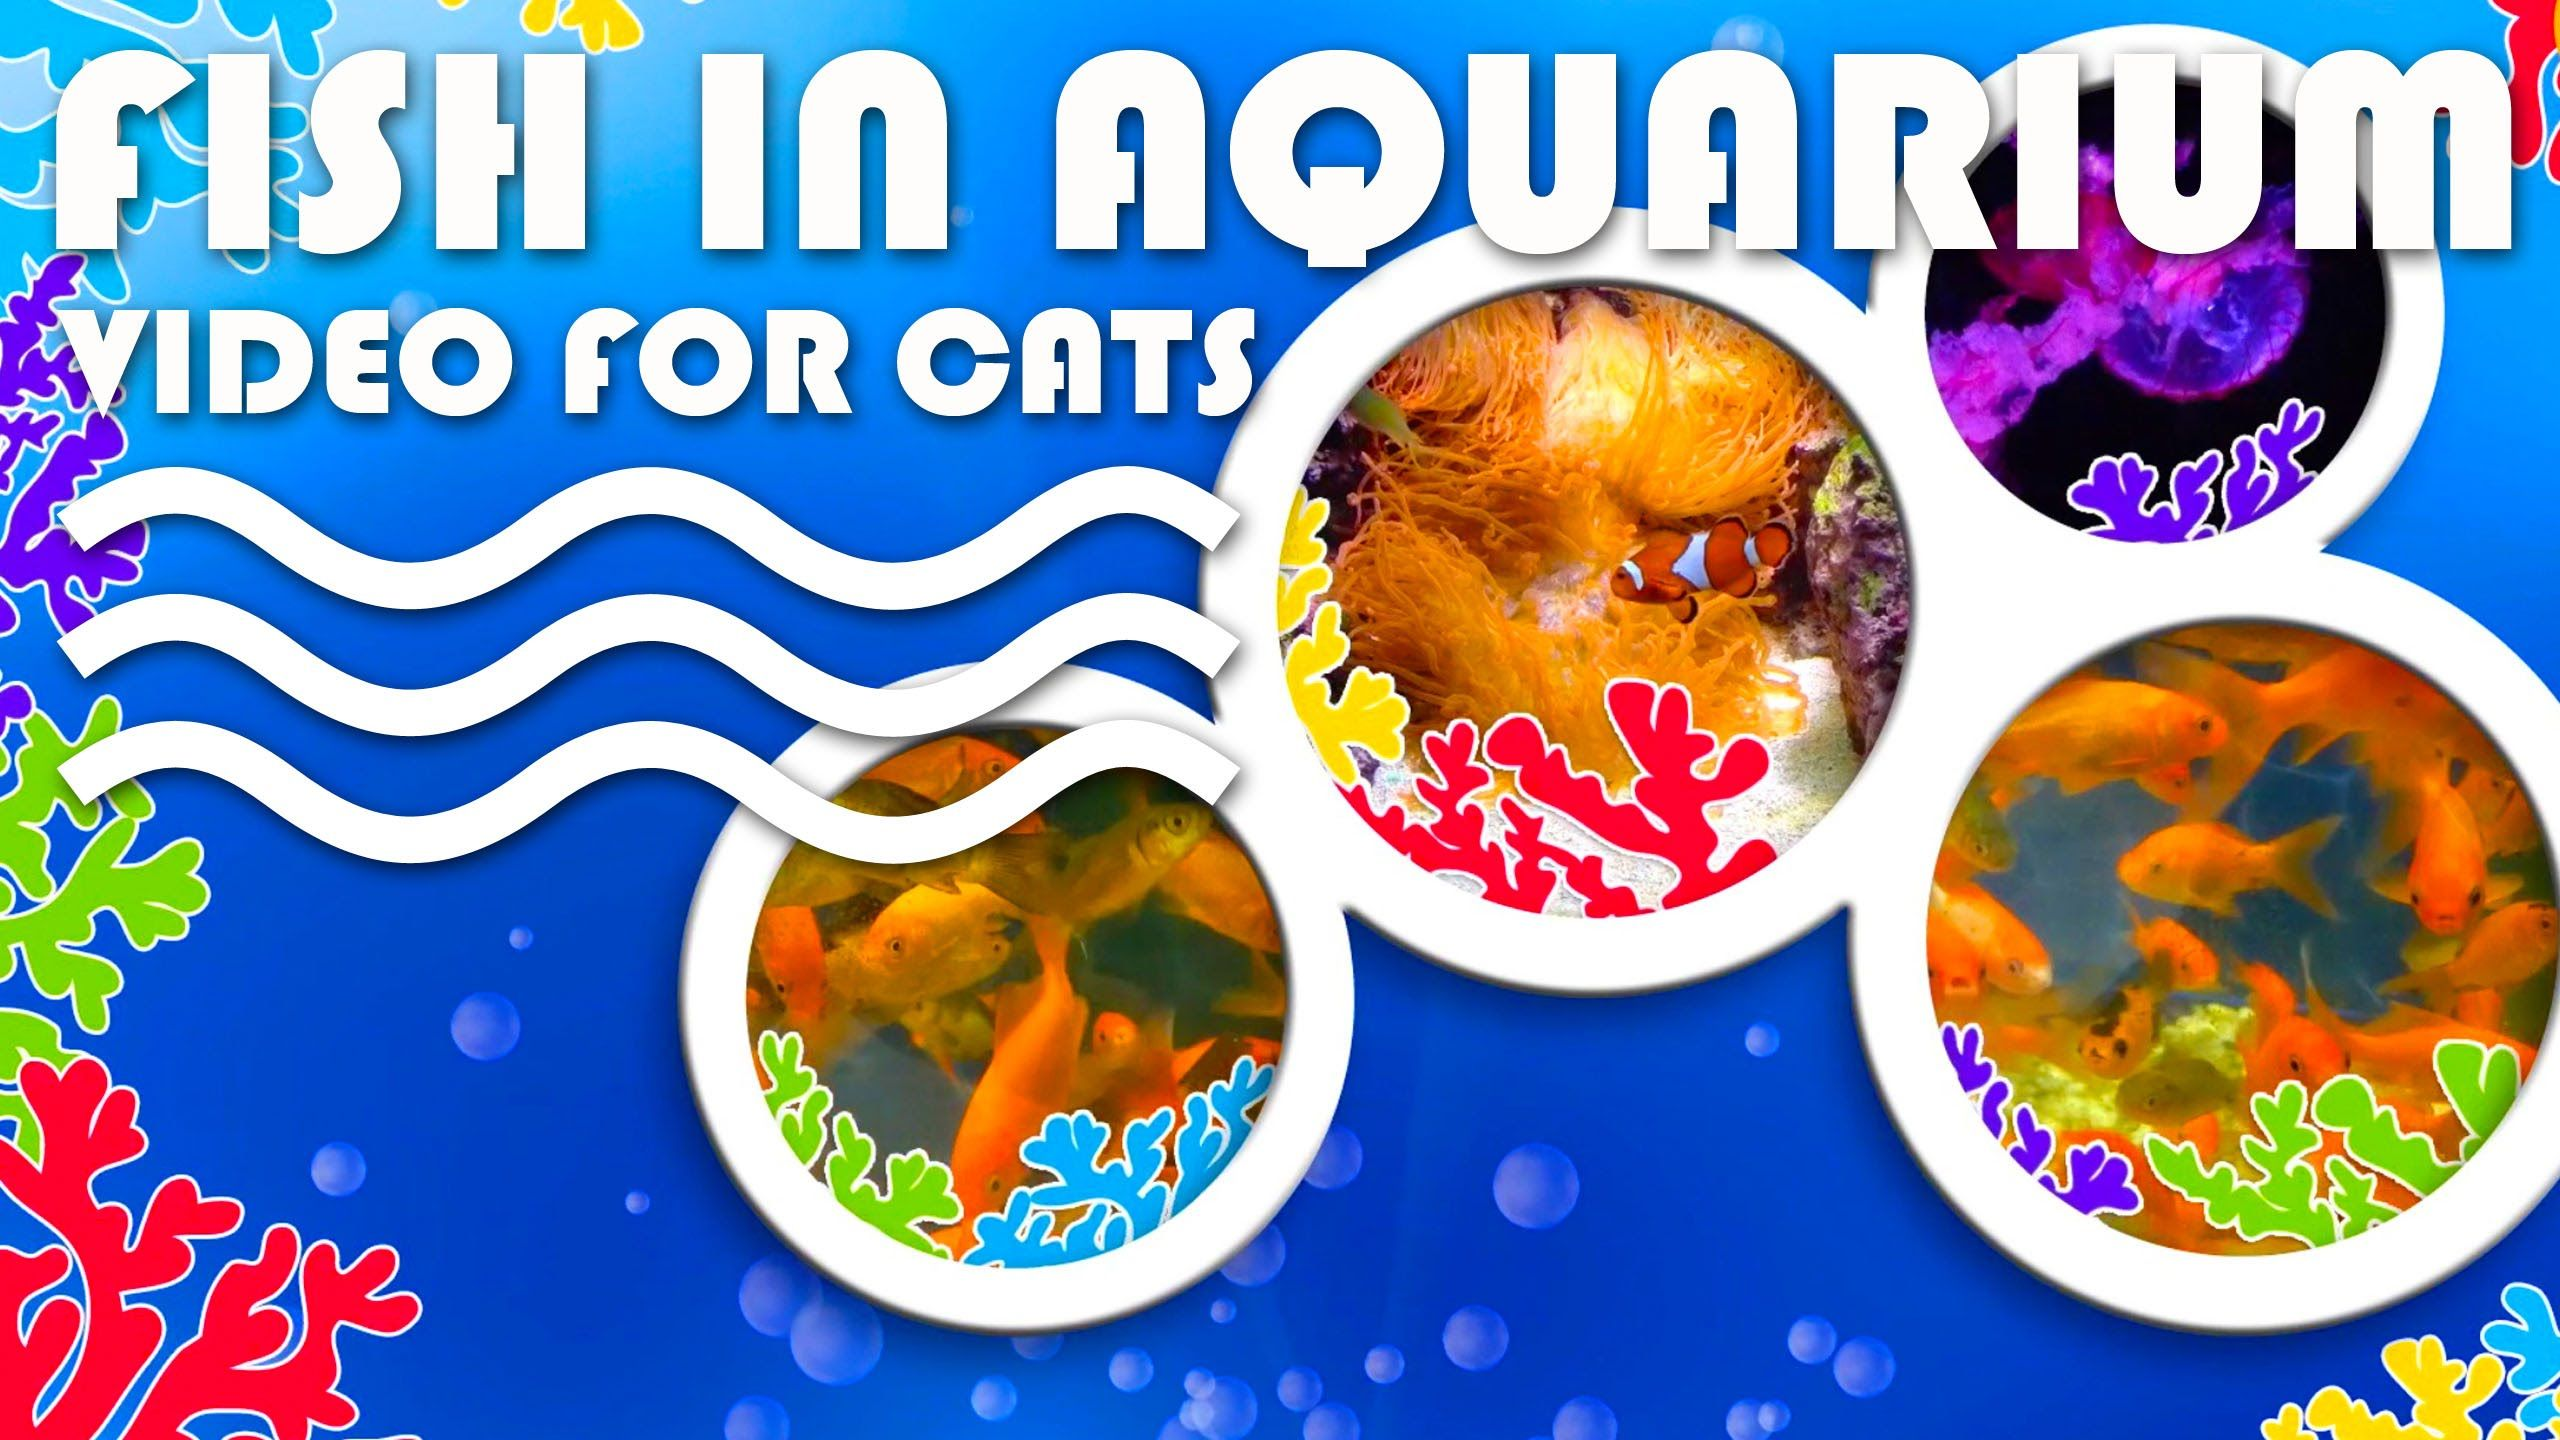 ENTERTAINMENT FOR CATS. Fish in aquarium for cats to watch